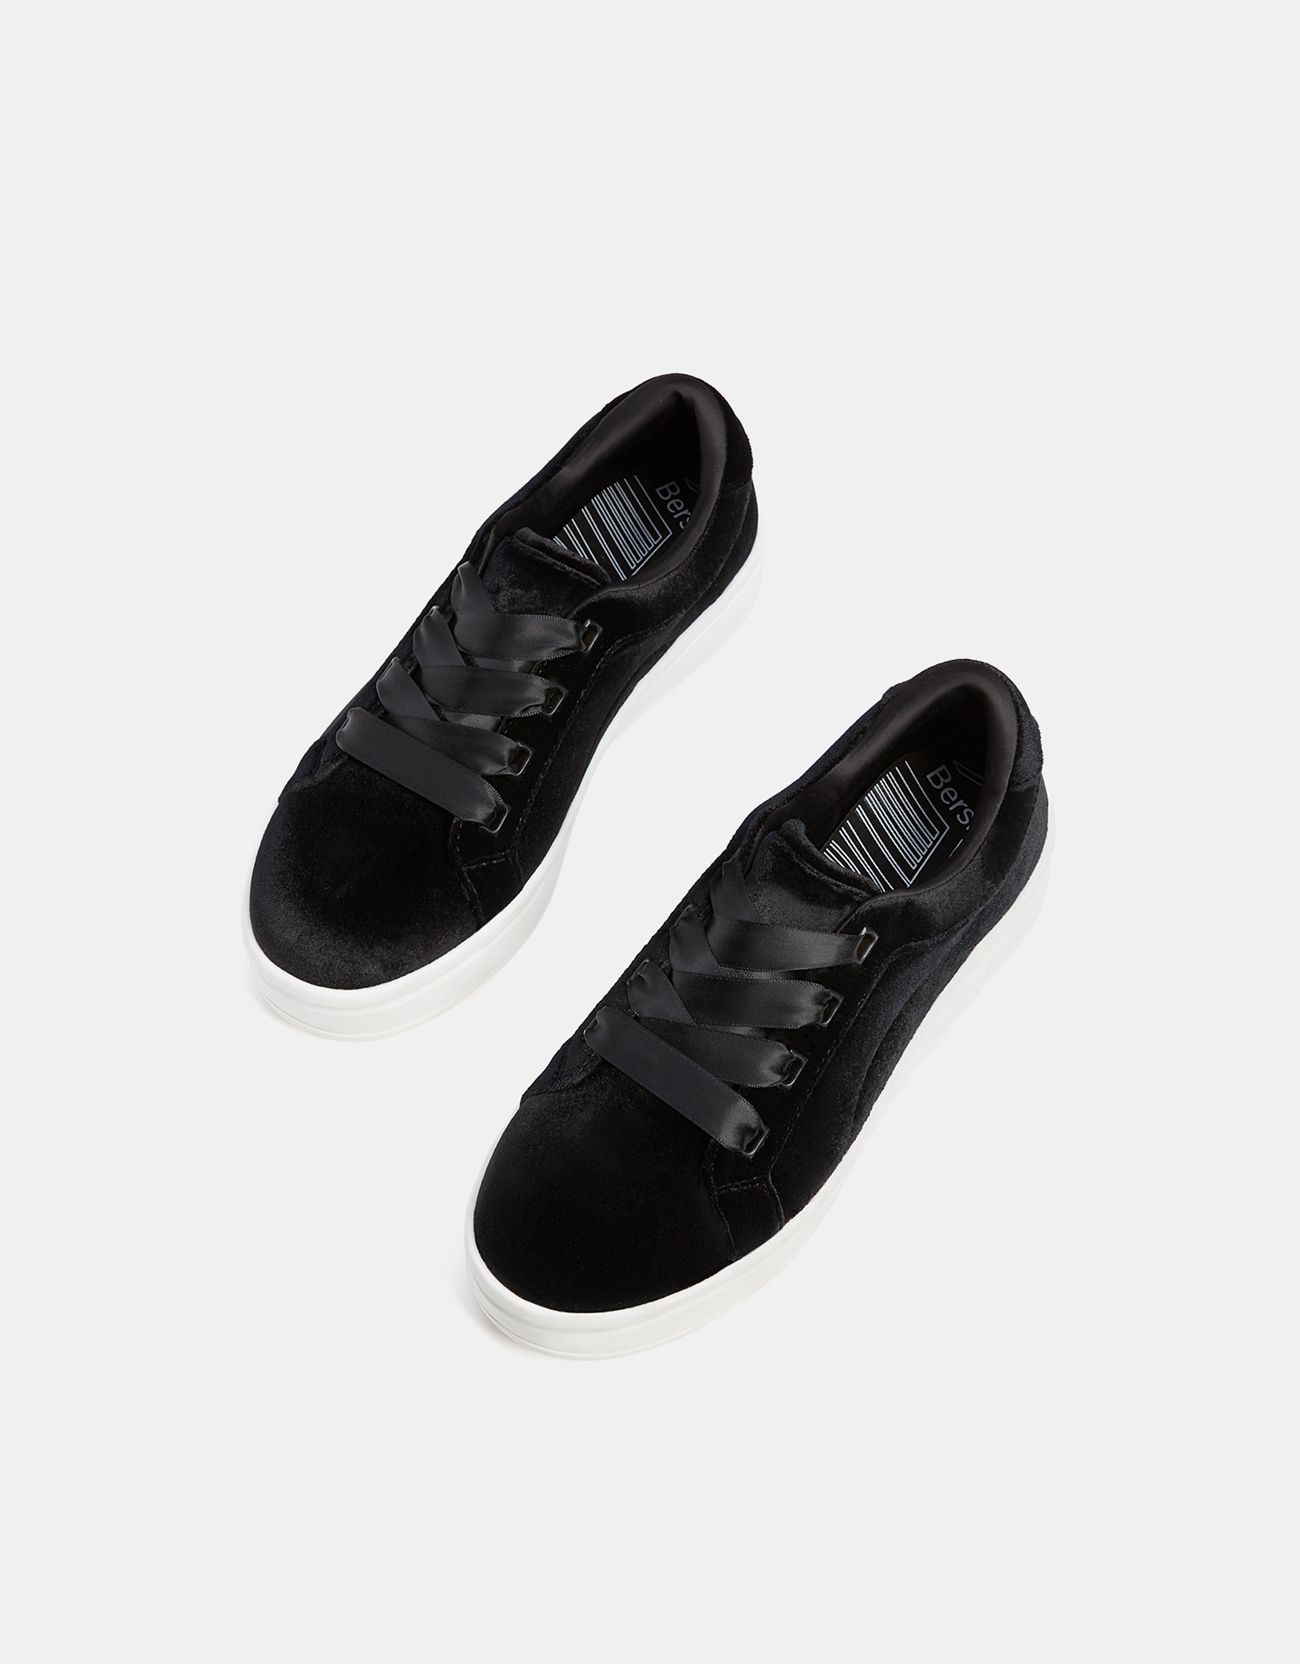 Velvet sneakers with satin laces